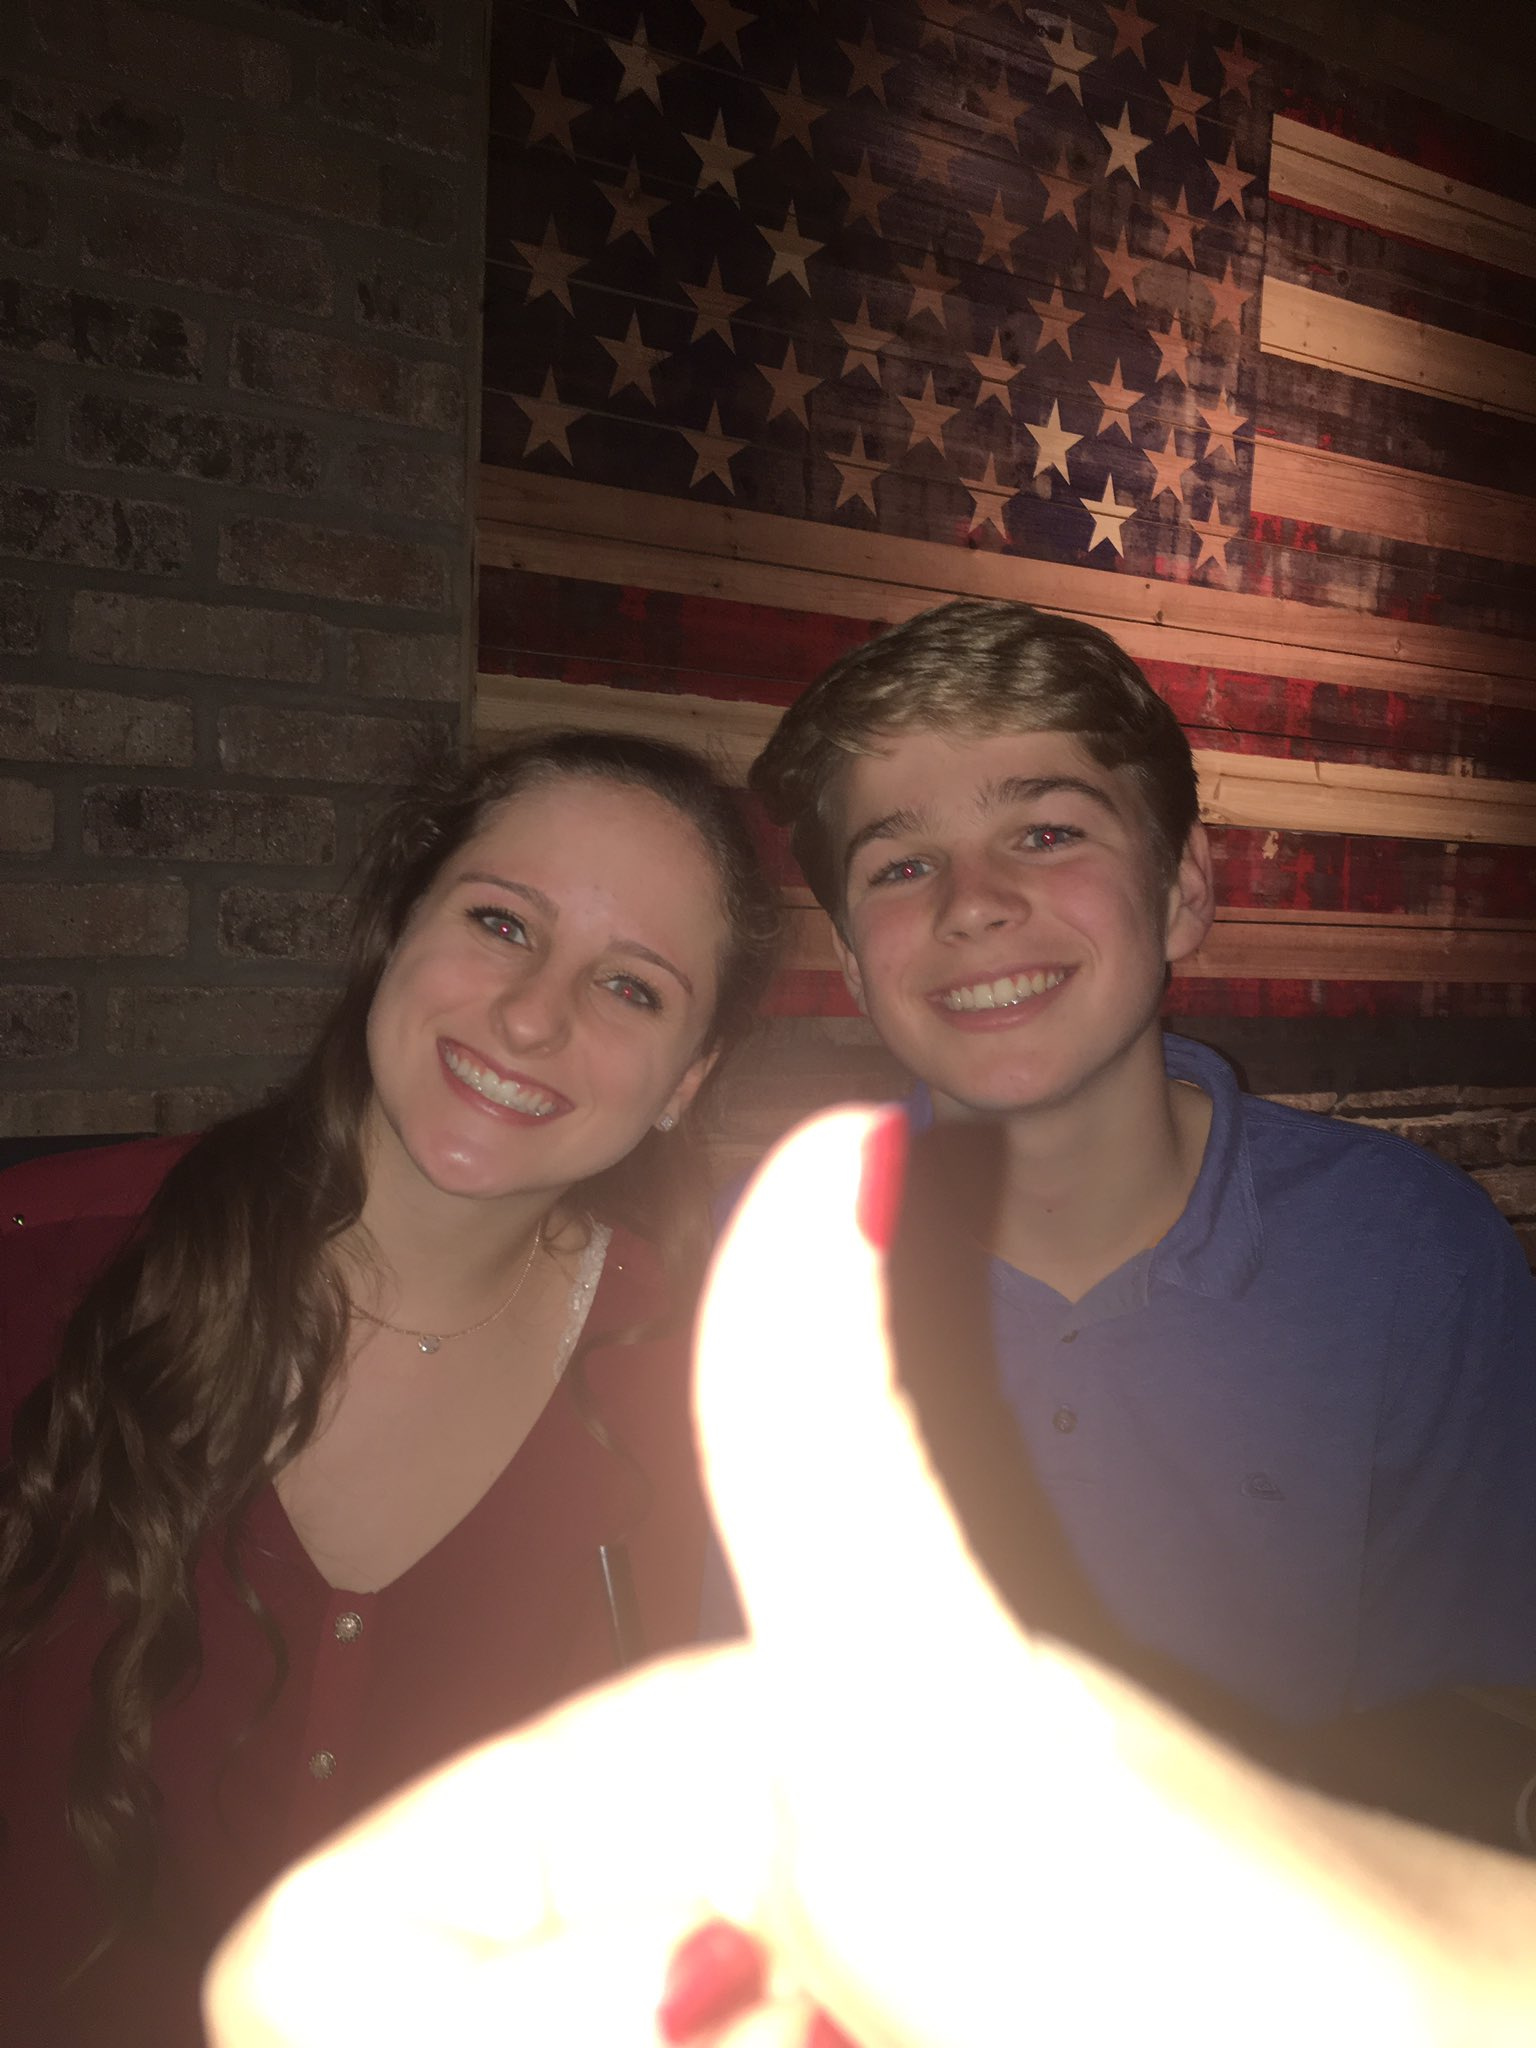 Happy birthday maxwell!! Hope your day was stella!!!:))